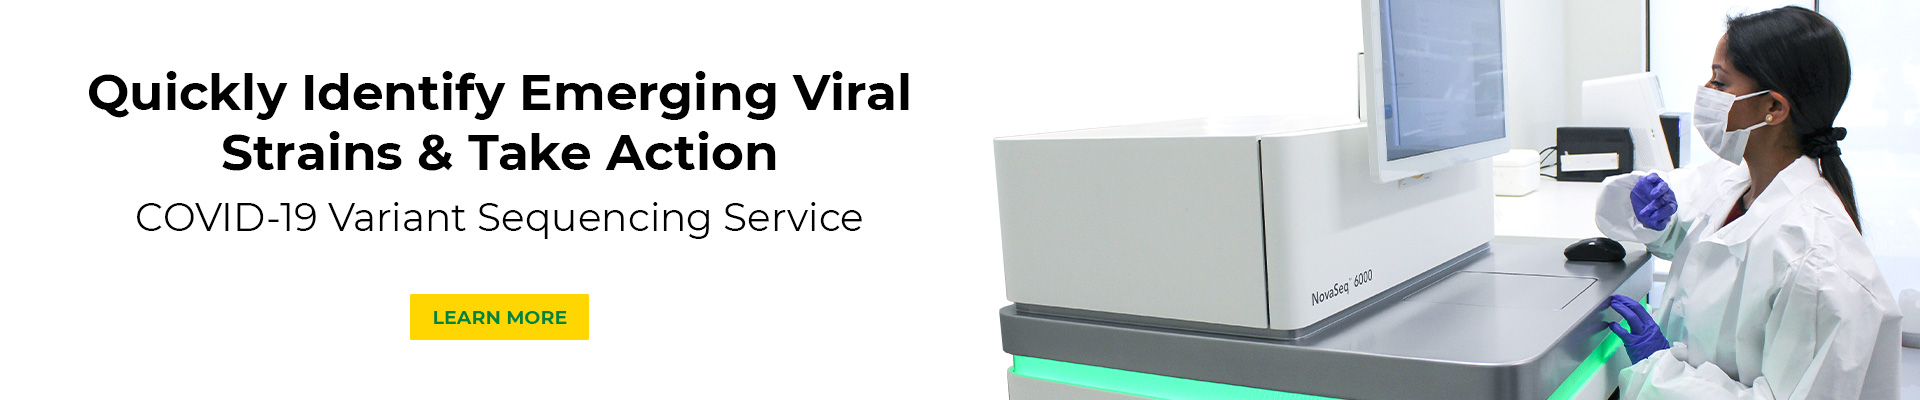 home page carousel banner for COVID-19 Variant Sequencing Service